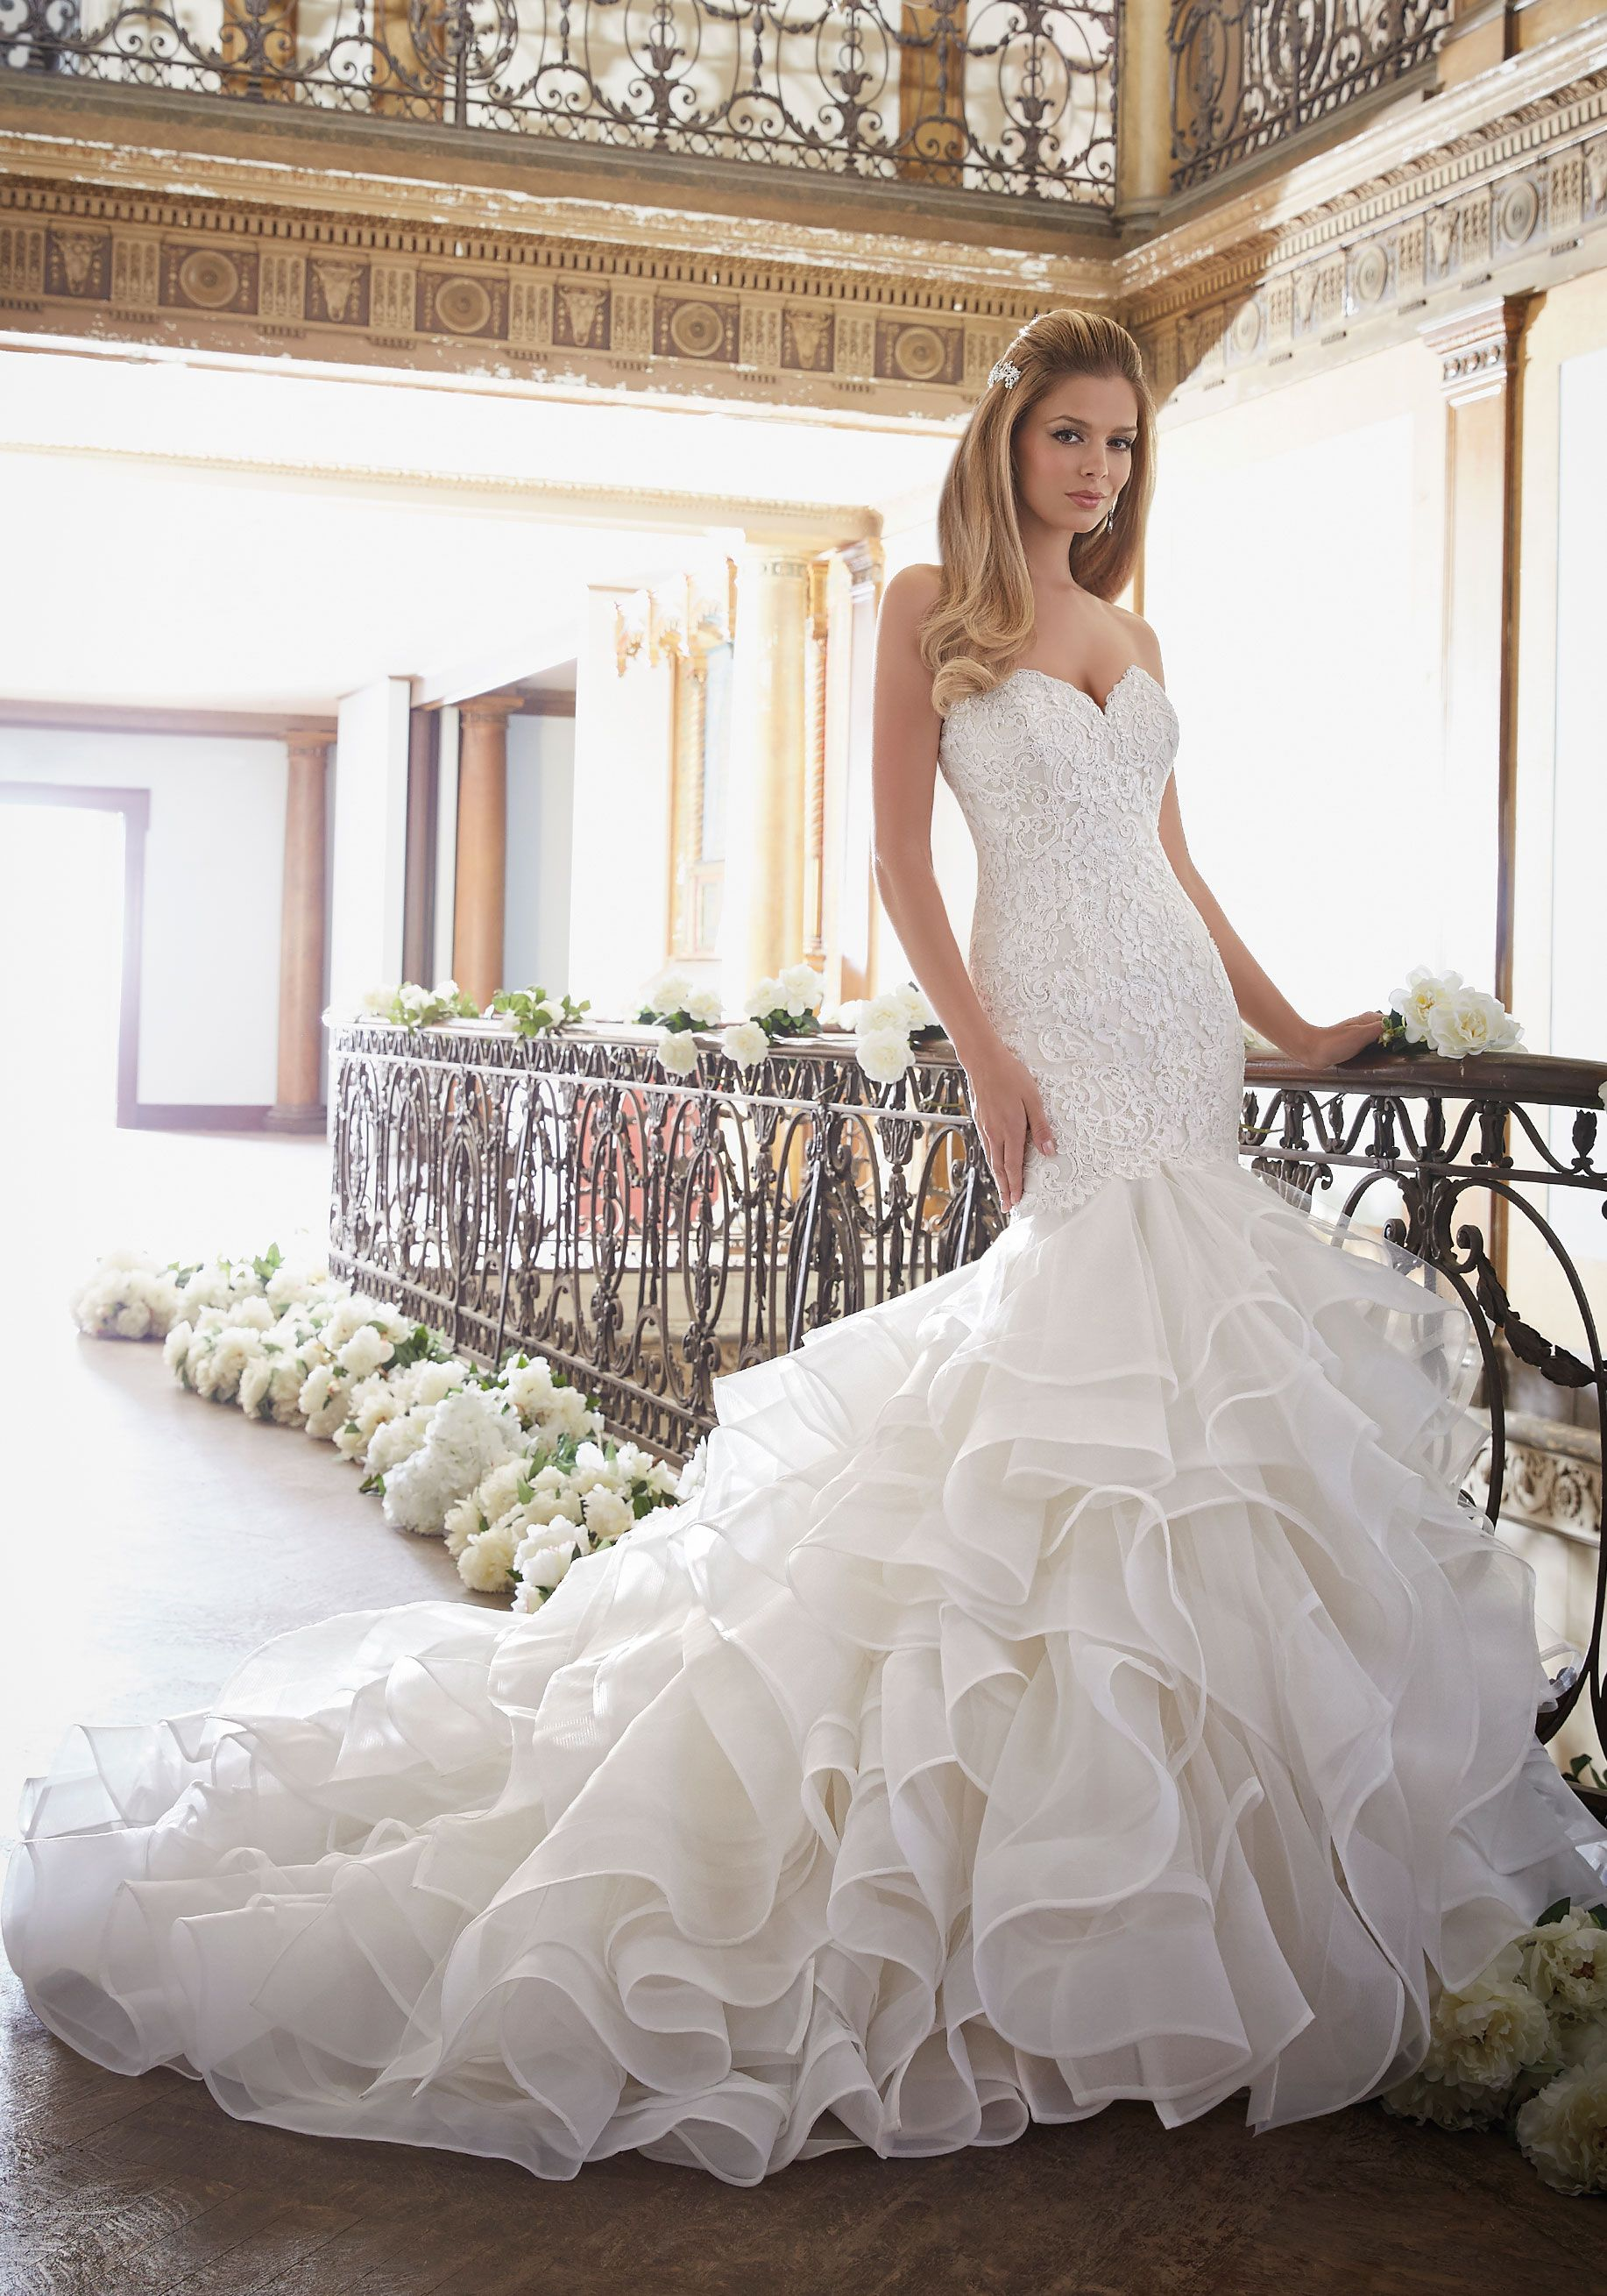 46841570410 Alencon Lace Meets Flounced Tulle and Organza Wedding Dress Designed by  Madeline Gardner. Colors  White